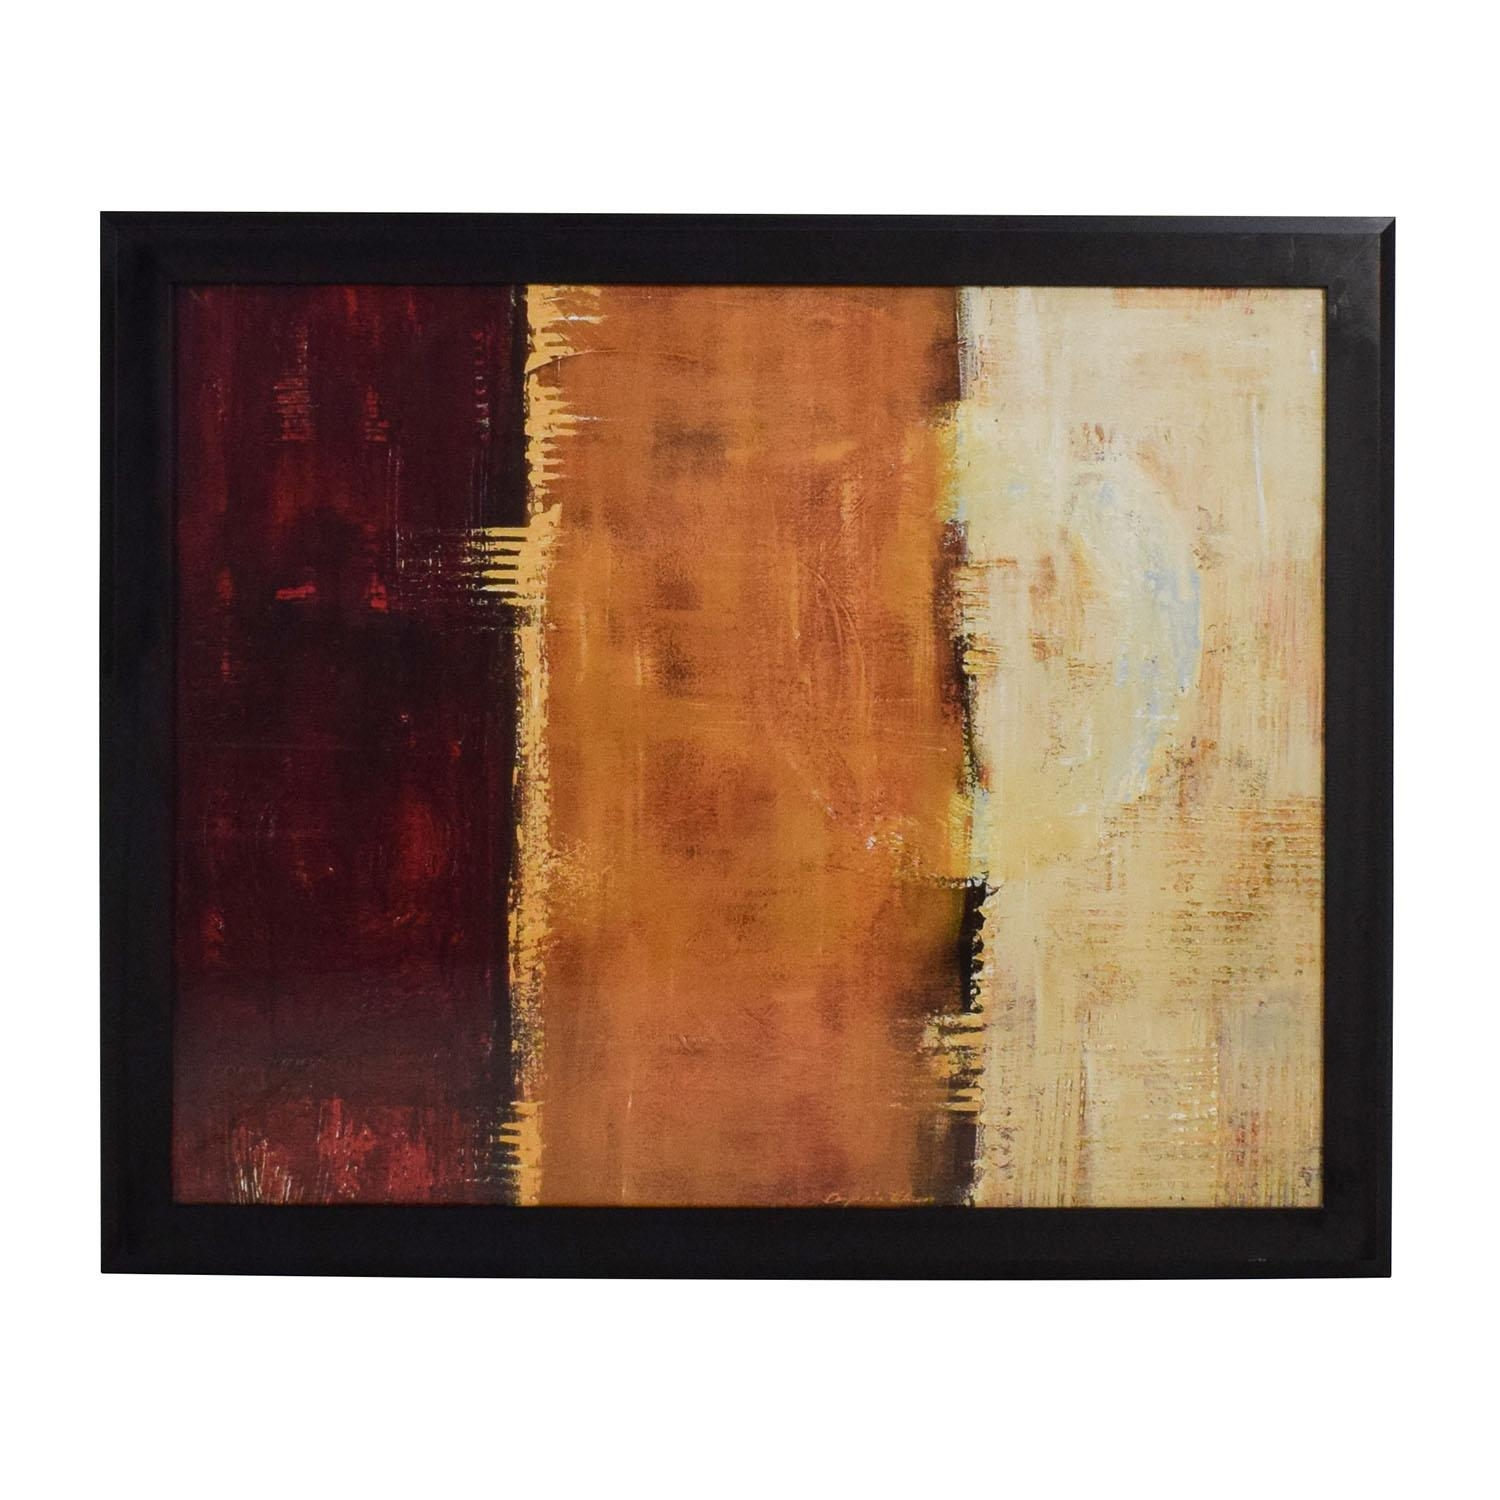 88% Off – Z Gallerie Z Gallerie Framed Canvas Red Orange Yellow Regarding Red And Yellow Wall Art (View 7 of 20)